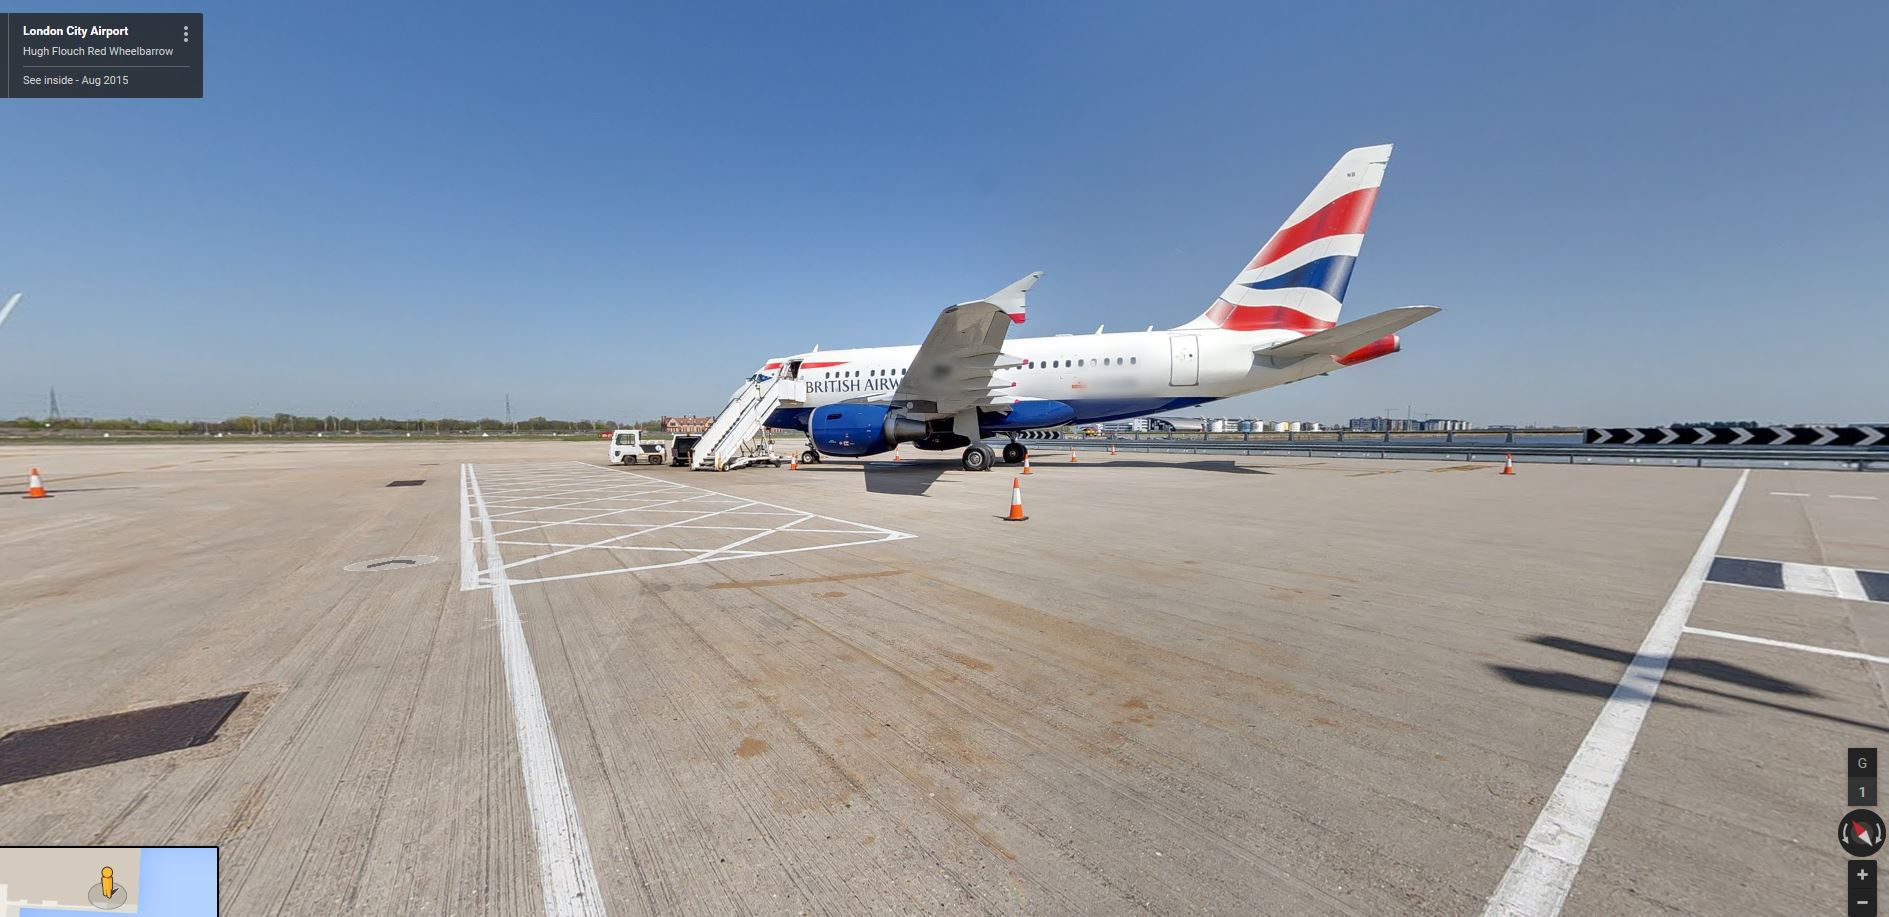 British Airways_google street view_Airbus A318_London City Airport